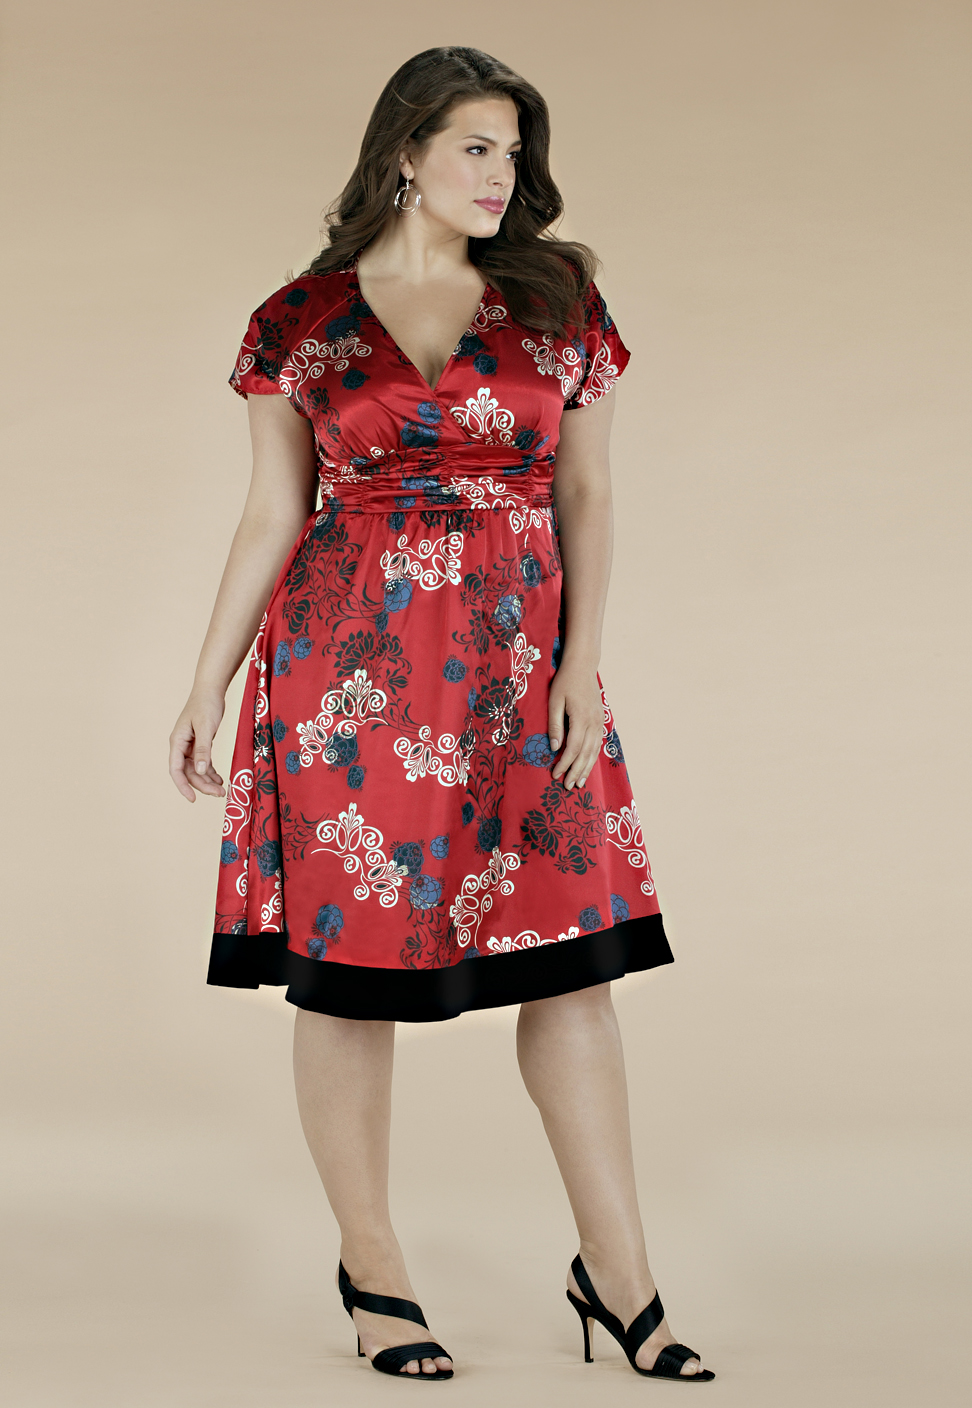 Affordable Designer Plus Size Clothing Plus Size Clothing for Women